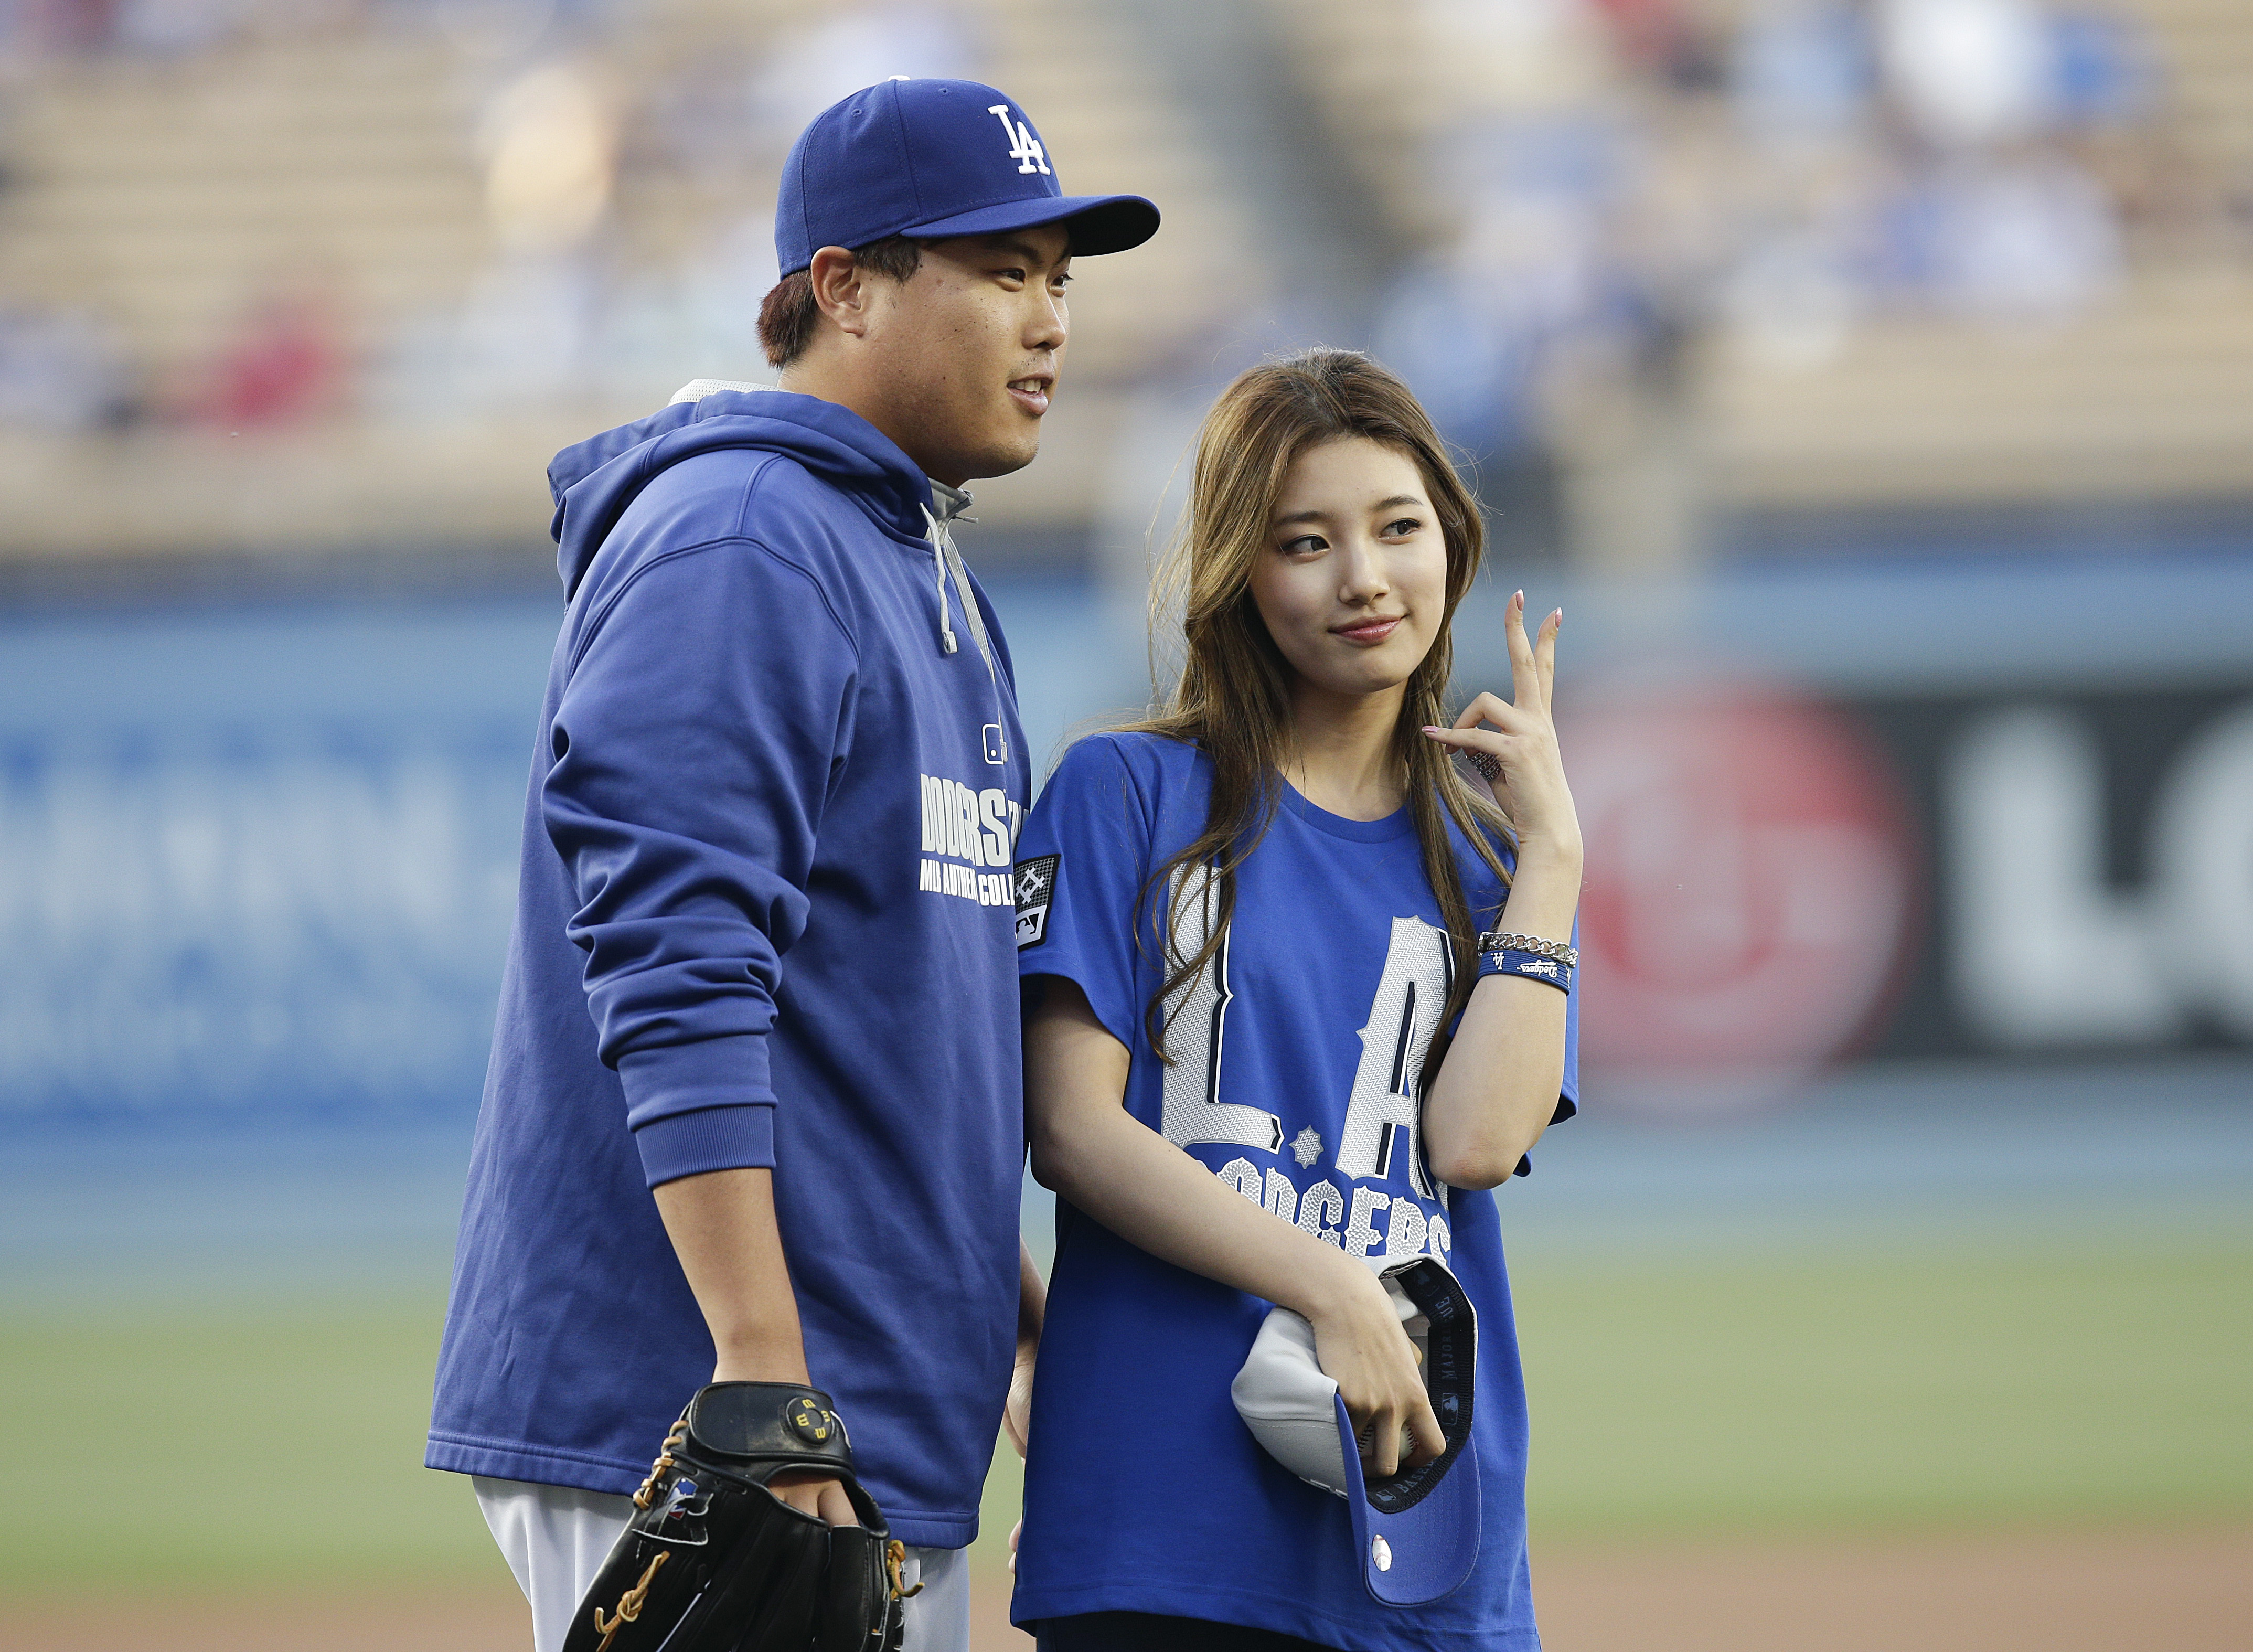 Los Angeles Dodgers starting pitcher Hyun-Jin Ryu, left, of South Korea, poses with South Korean singer Suzy after she threw the ceremonial first pitch before the team's baseball game against the Cincinnati Reds on Wednesday, May 28, 2014, in Los Angeles. (AP Photo/Jae C. Hong)